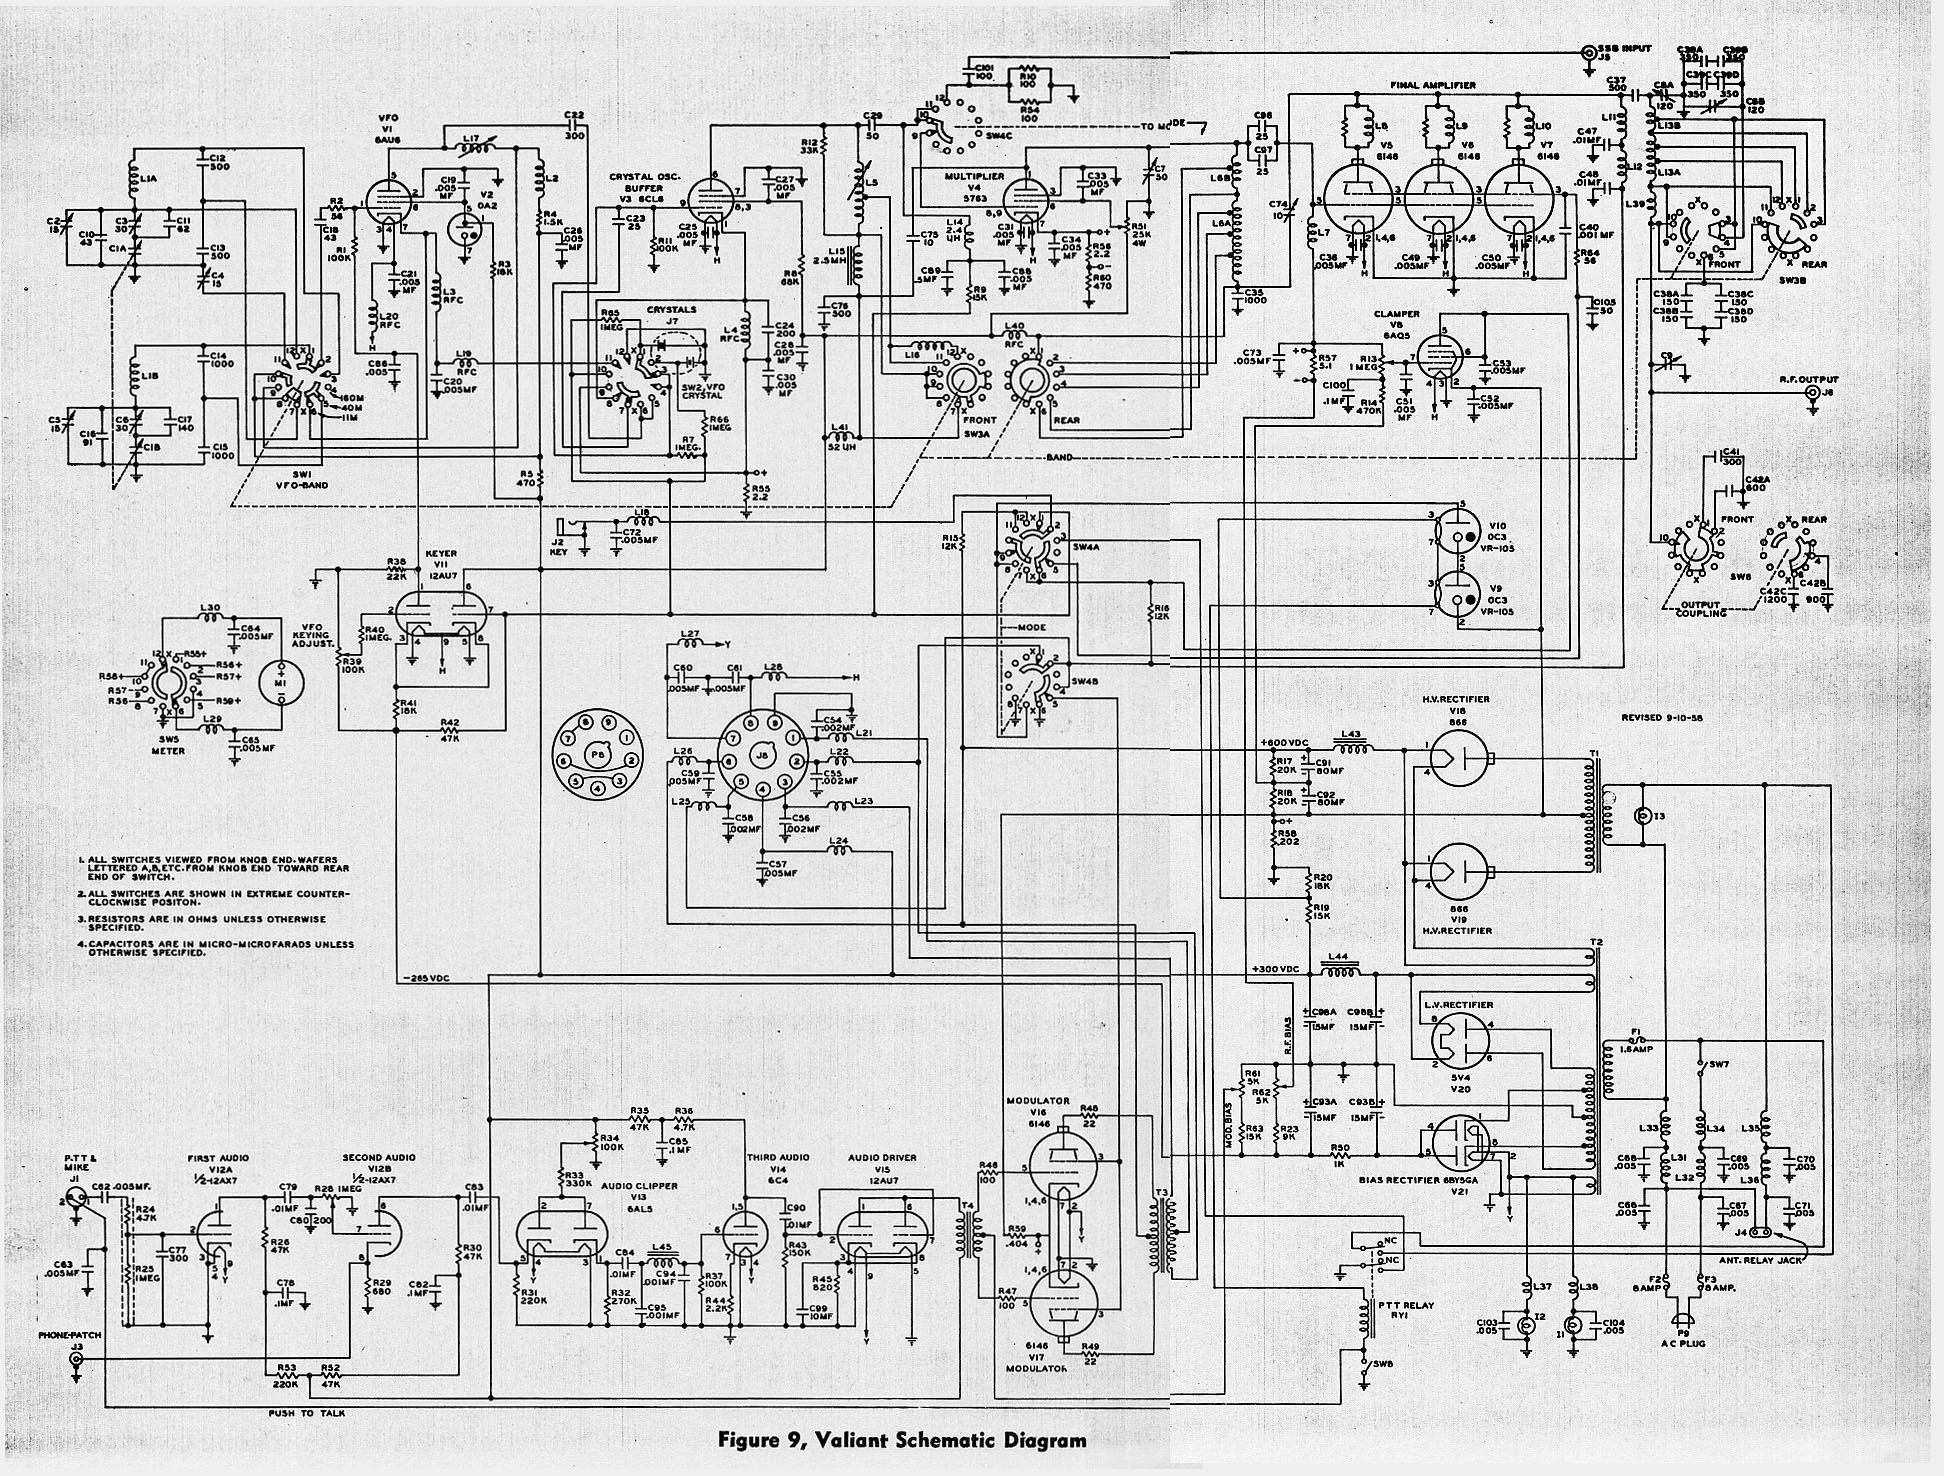 Troubleshooting Or Just Shooting A Johnson Valiant Wire Harness Http Freeradiocafecom Images Schematic